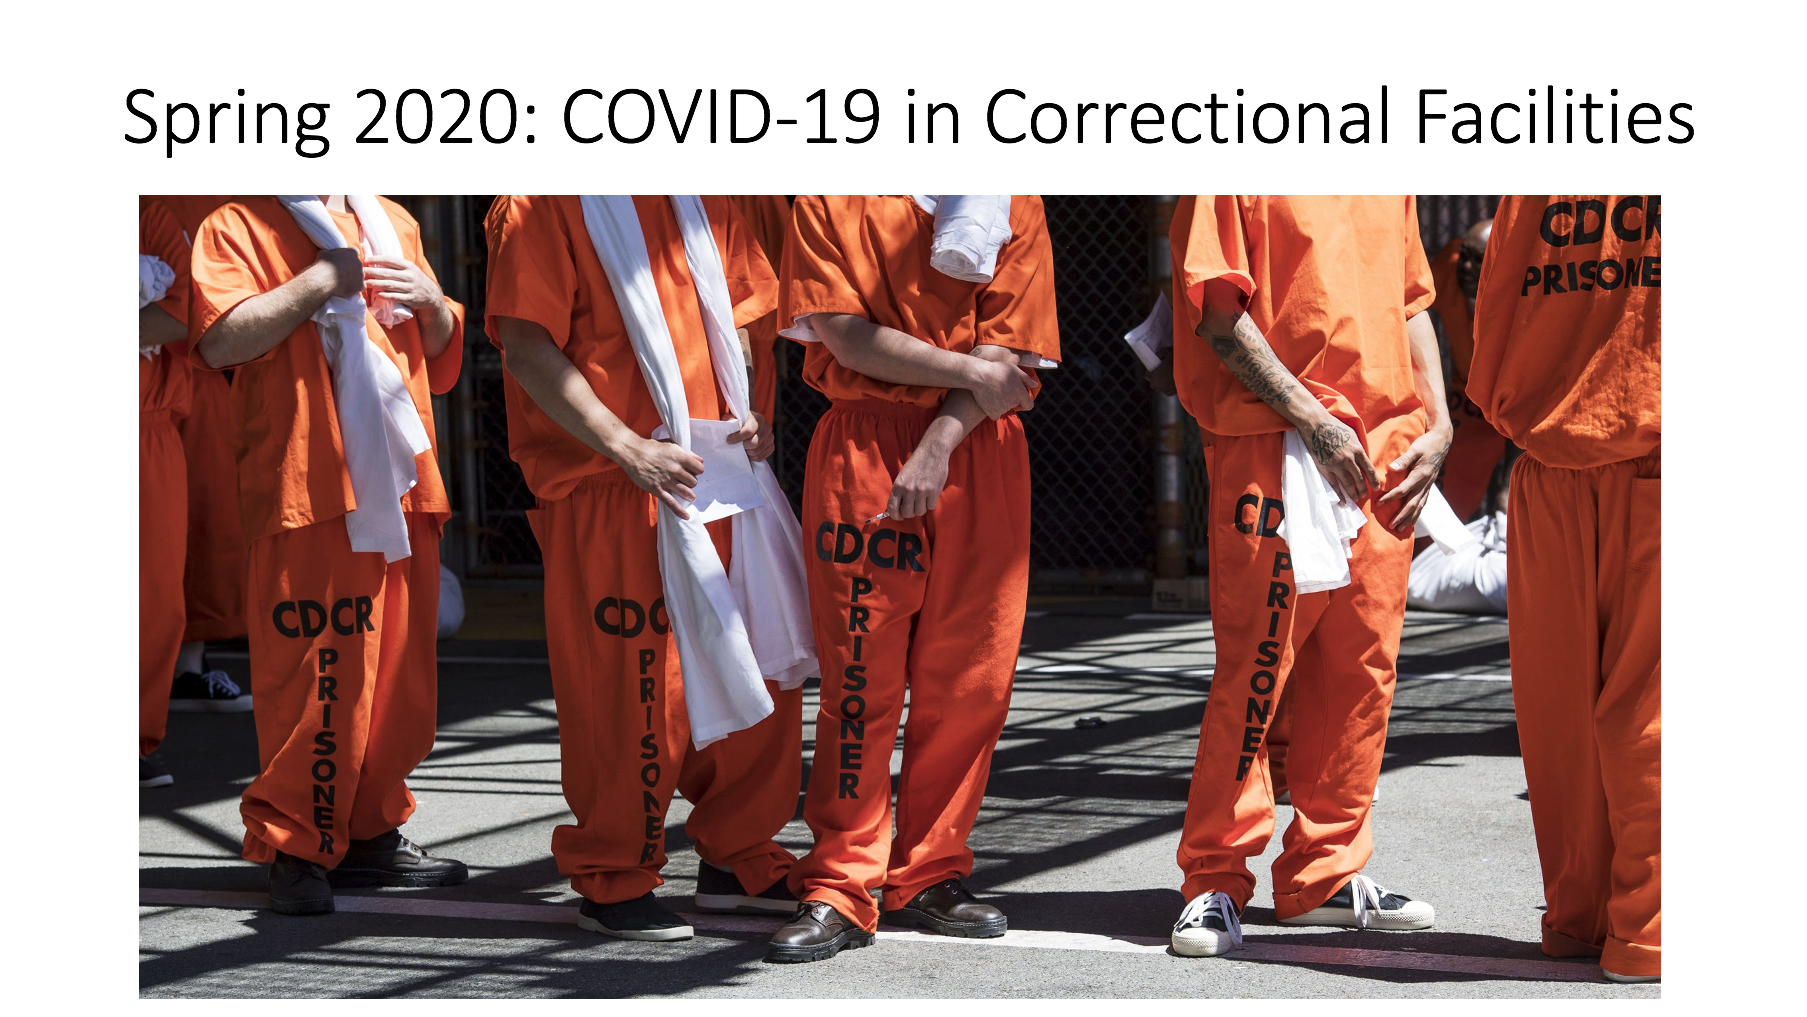 Spring 2020: COVID-19 in Correctional Facilities